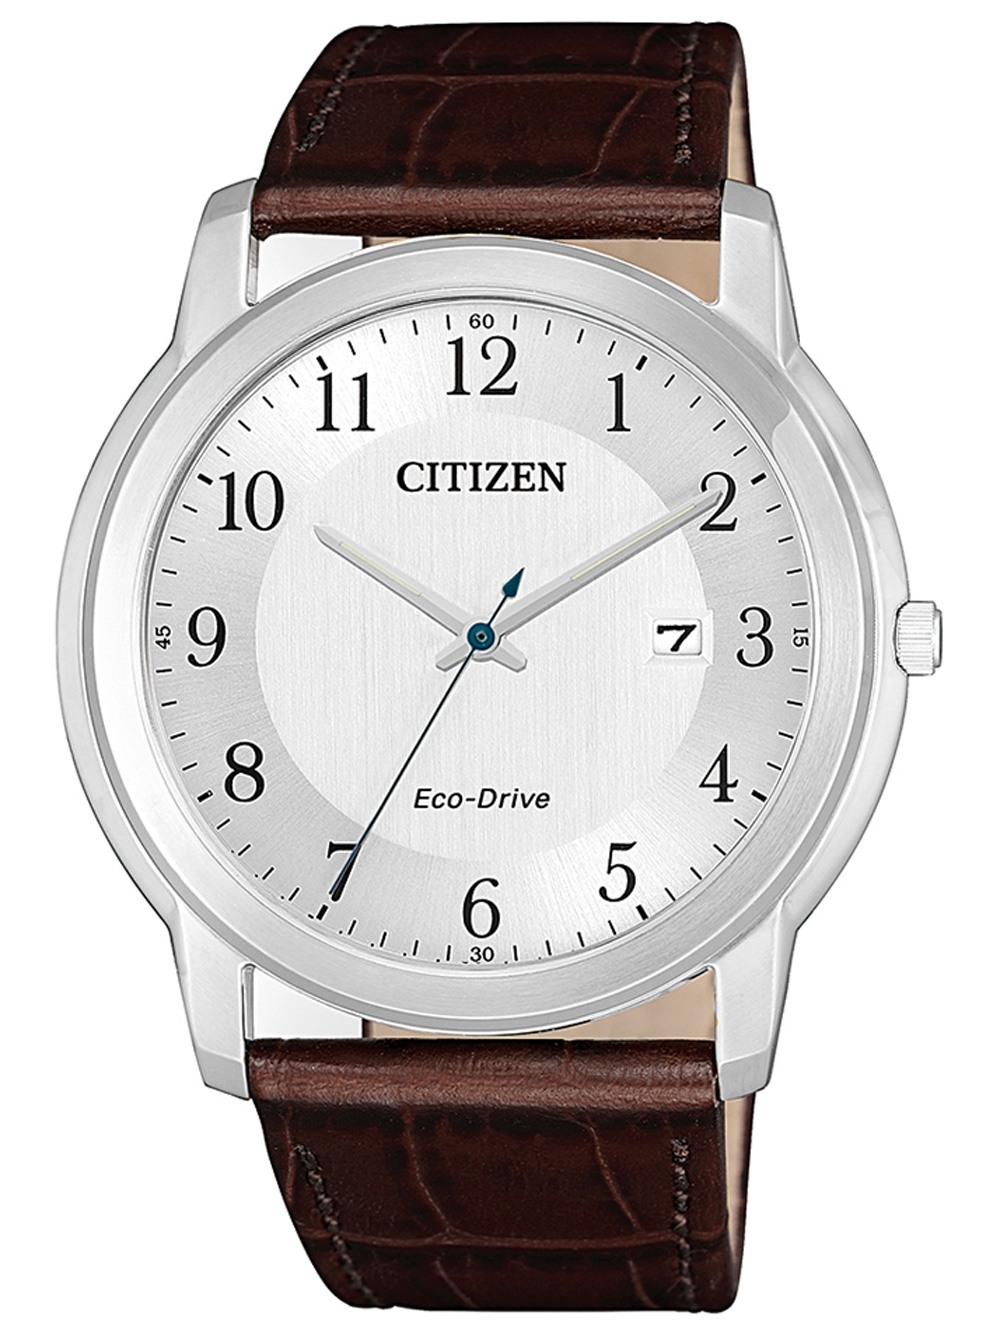 AW1211-12A Eco-Drive Herren 41mm 5ATM